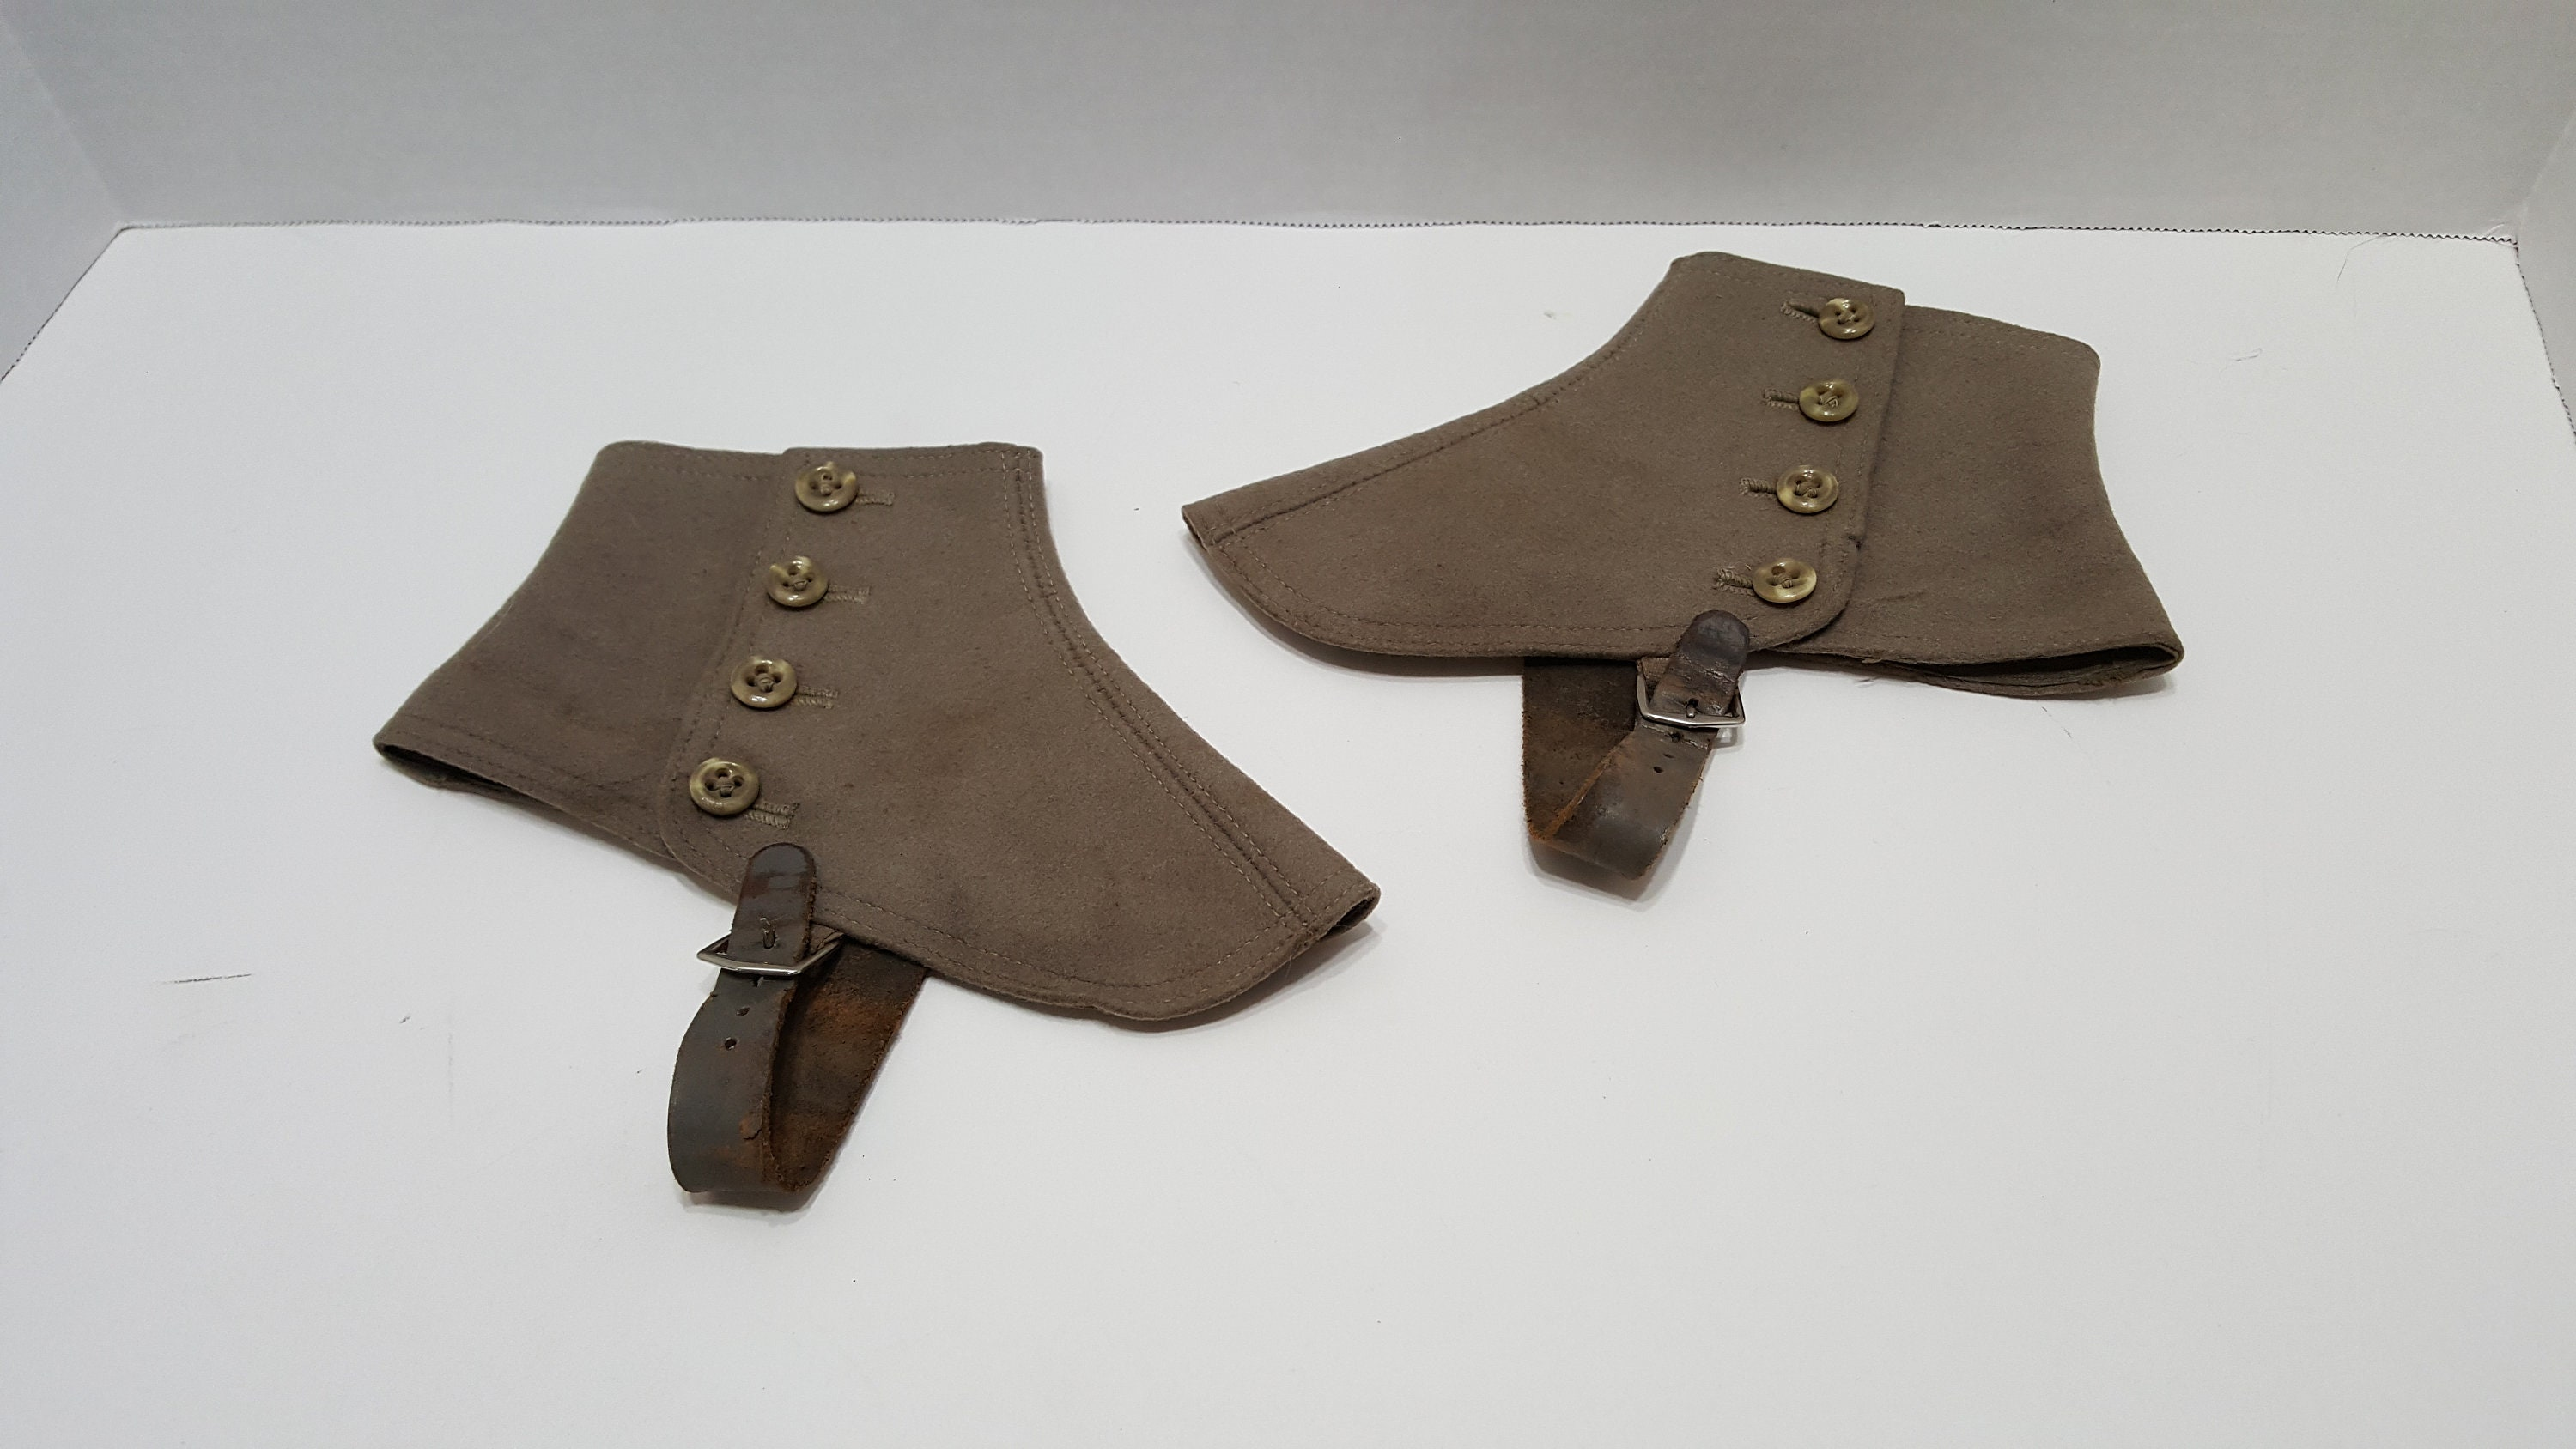 Spats, Gaiters, Puttees – Vintage Shoes Covers Antique Boot Spats Wool With Leather Straps  Buttons $26.50 AT vintagedancer.com